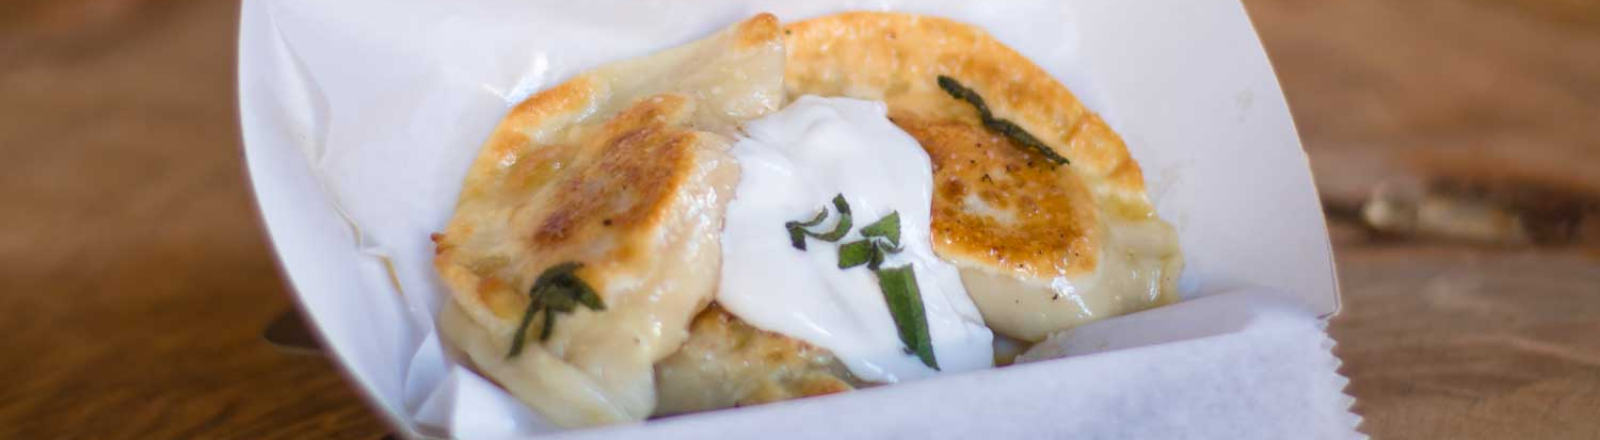 Pierogi with sour cream at The Perky Pantry food cart in Oregon City in Oregon's Mt. Hood Territory